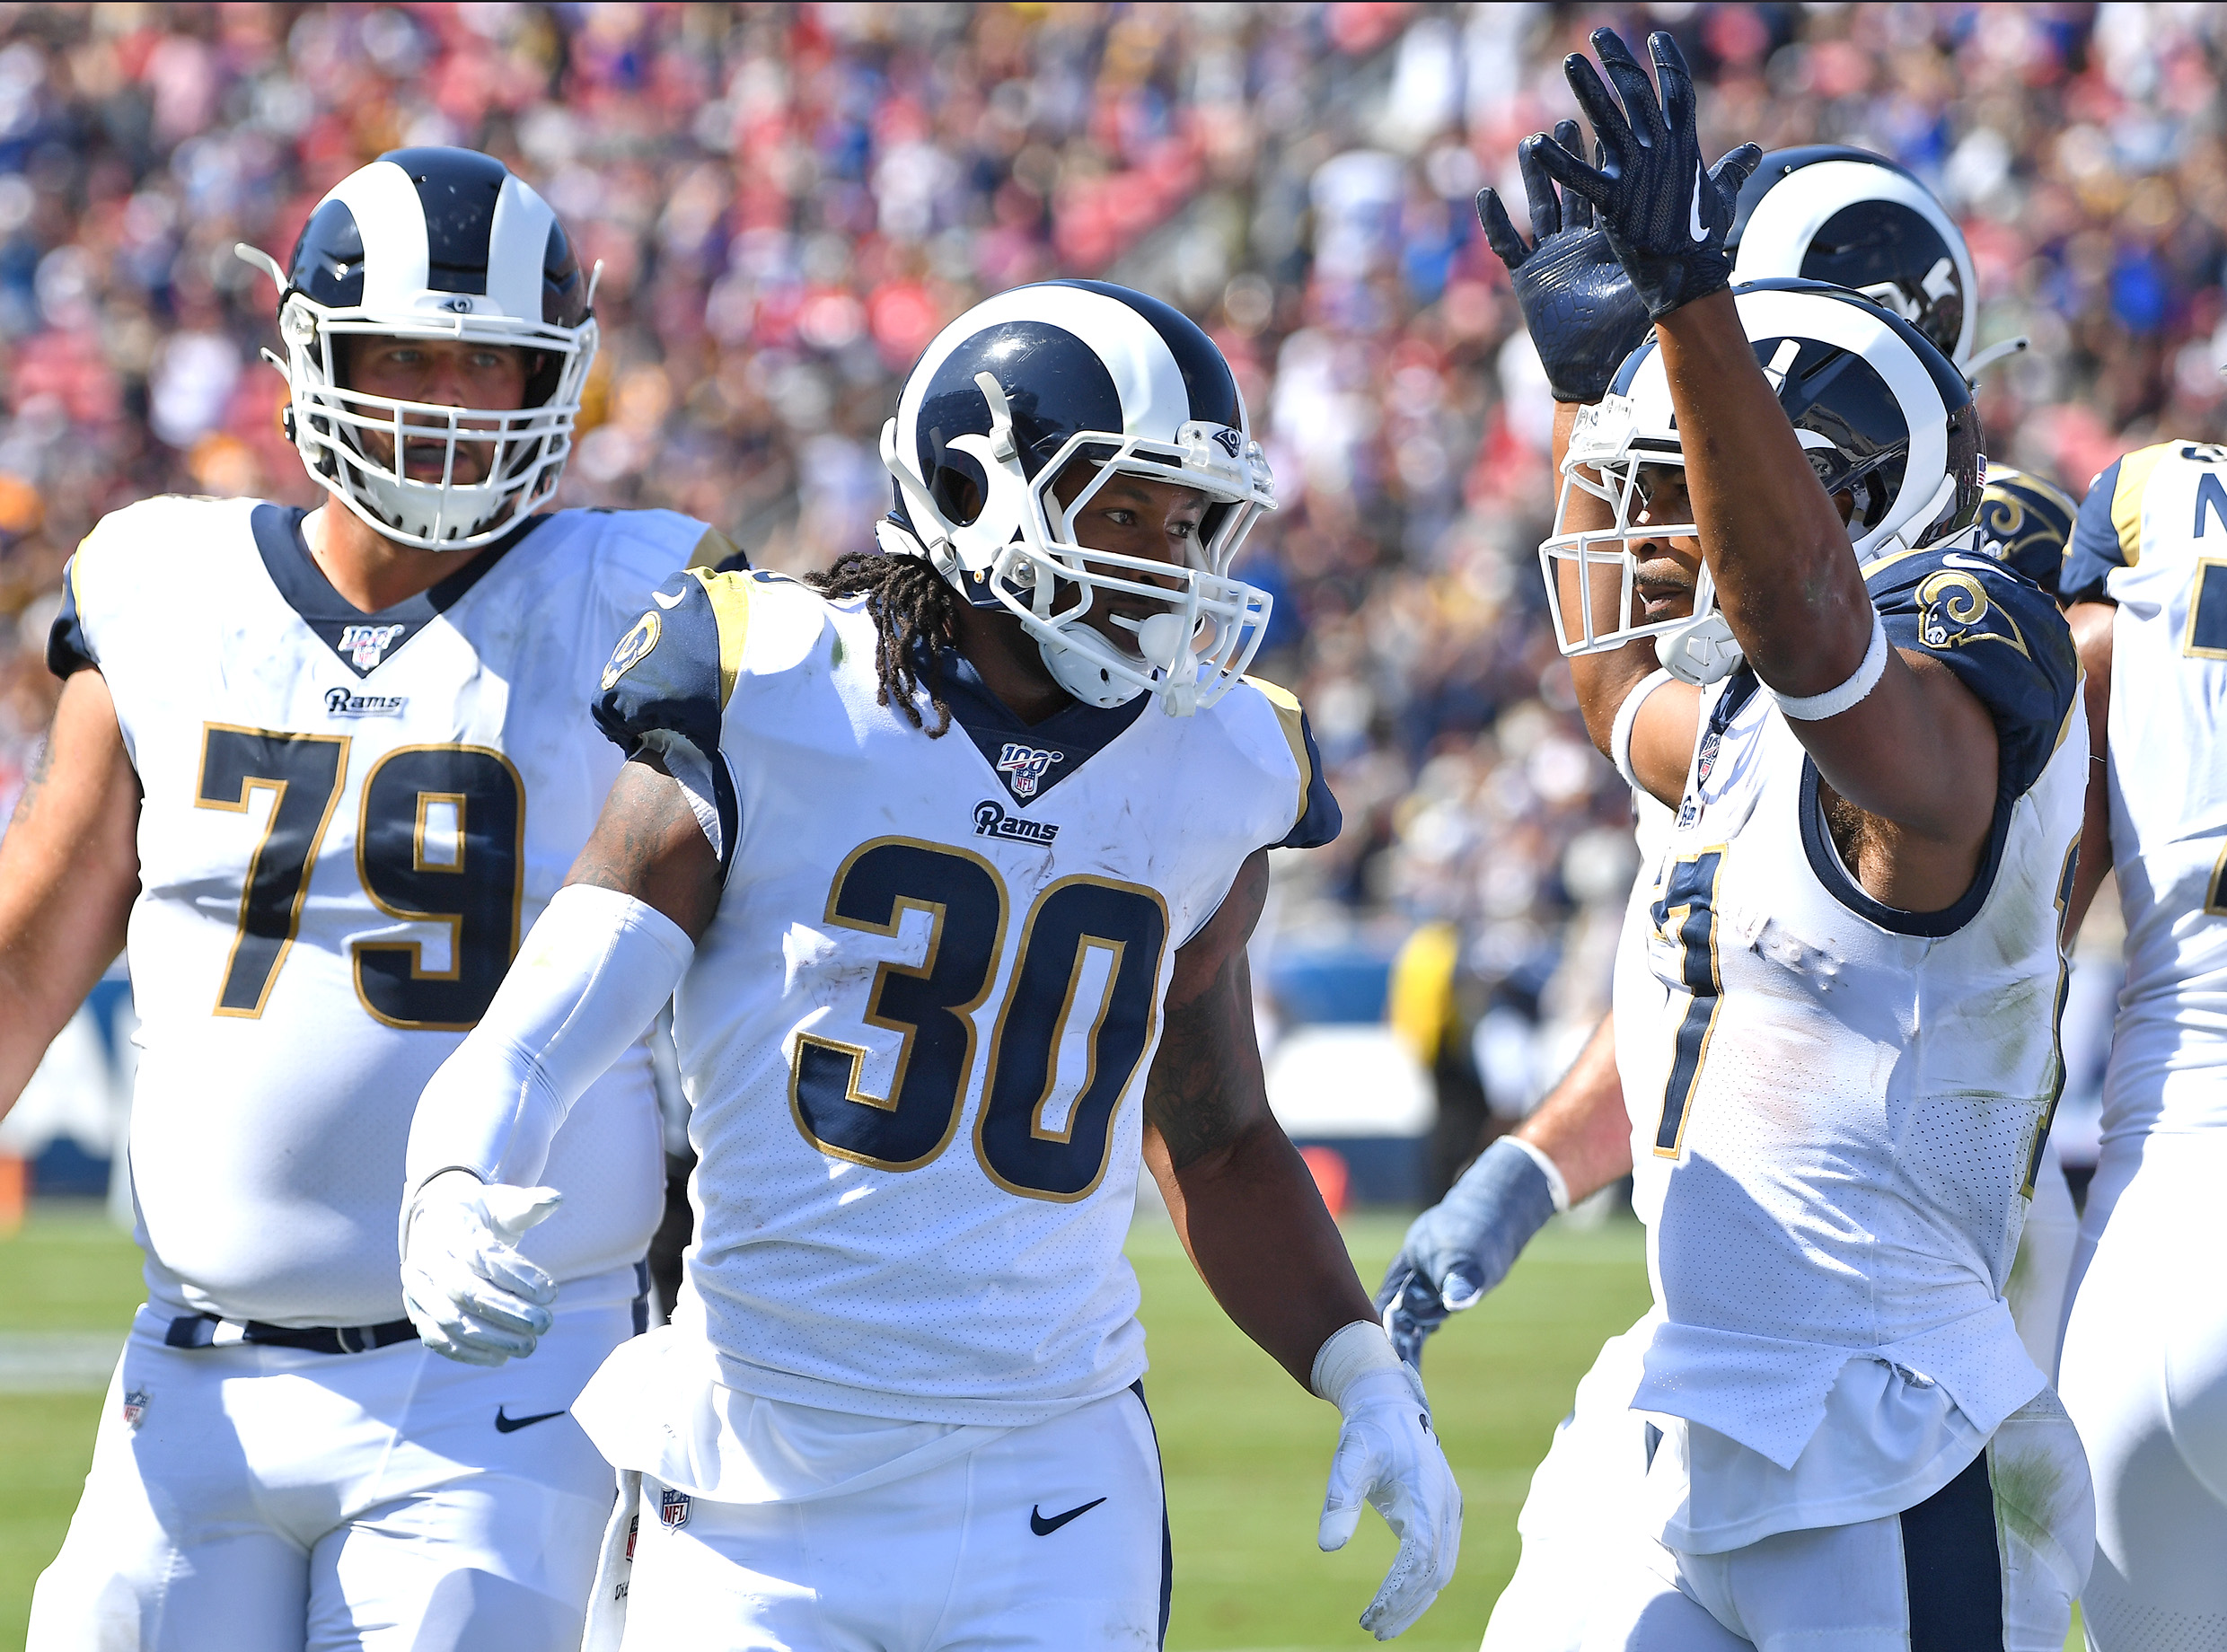 Todd Gurley sounds off about Thursday Night Football, says it's 'dumbest thing ever'